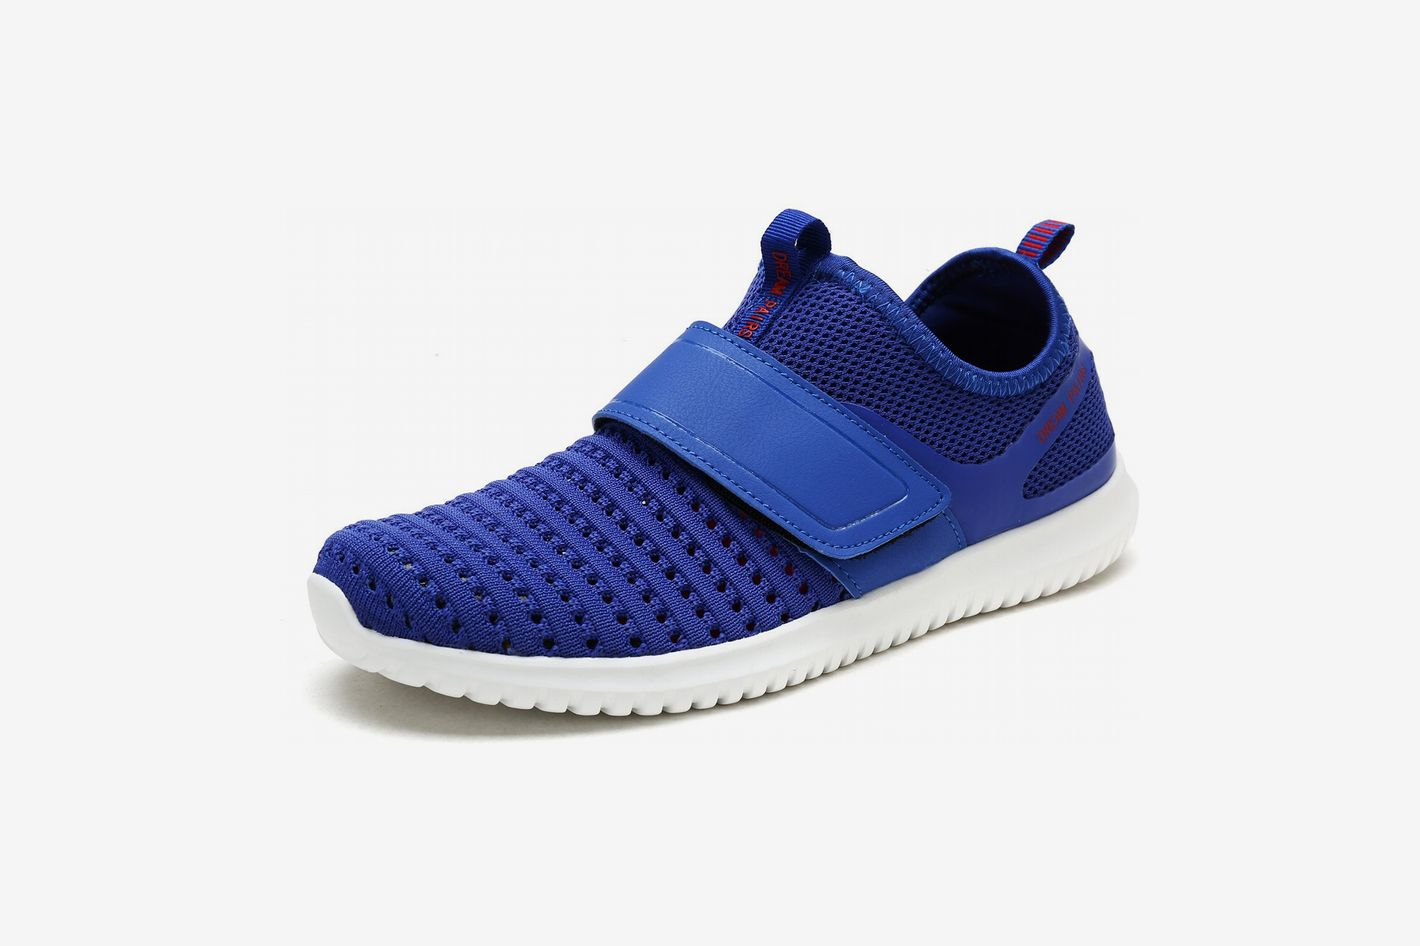 DREAM PAIRS Men's Slip On Athletic Water Shoes